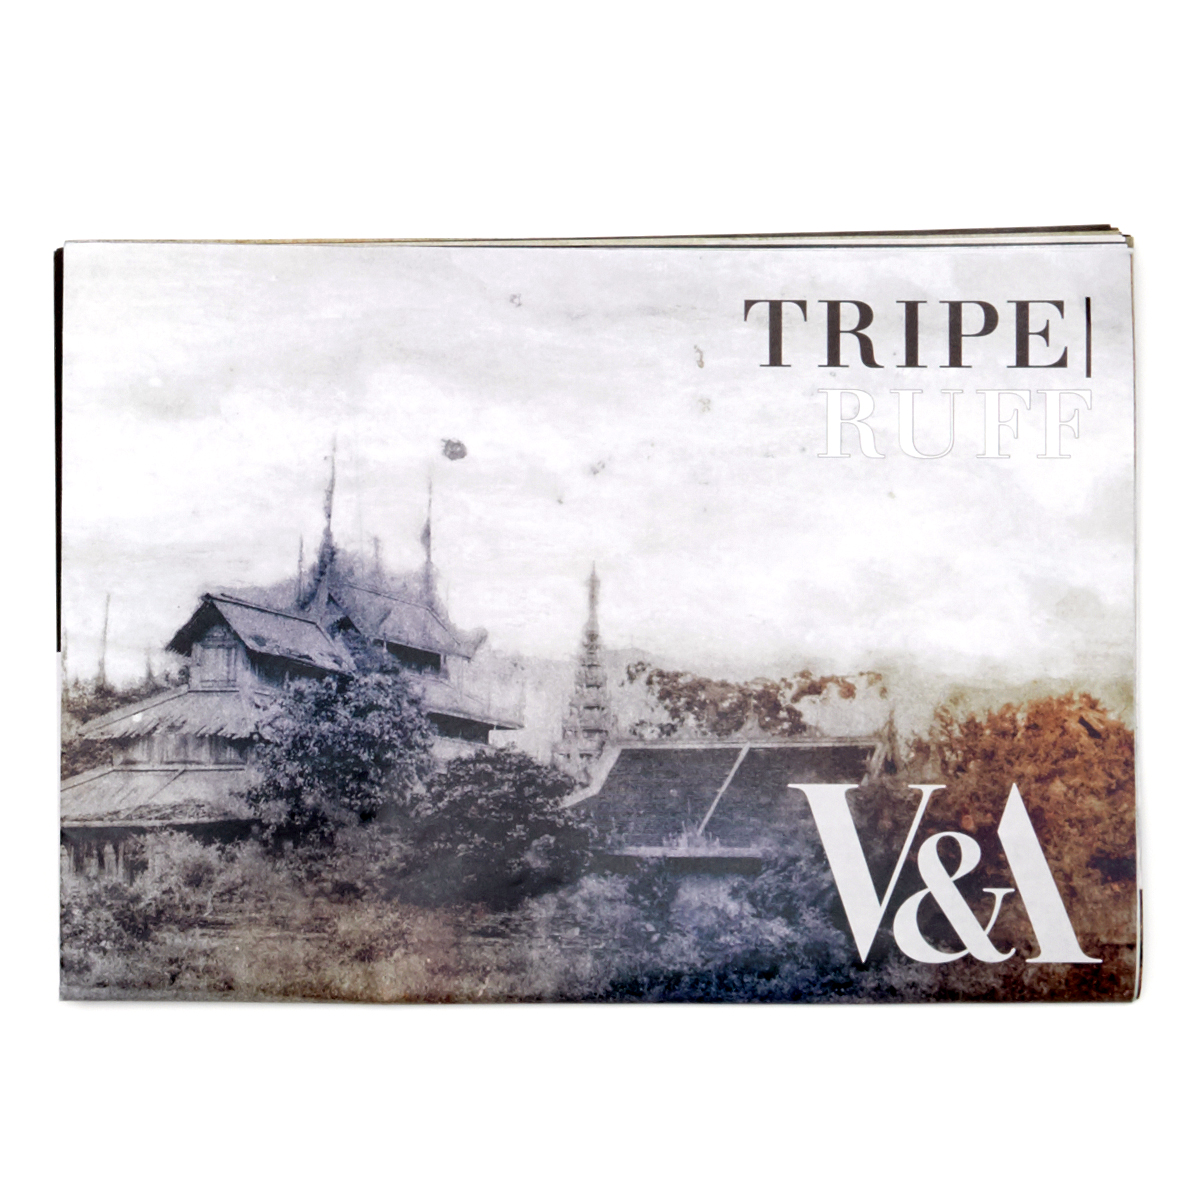 Tripe | Ruff broadsheet publication